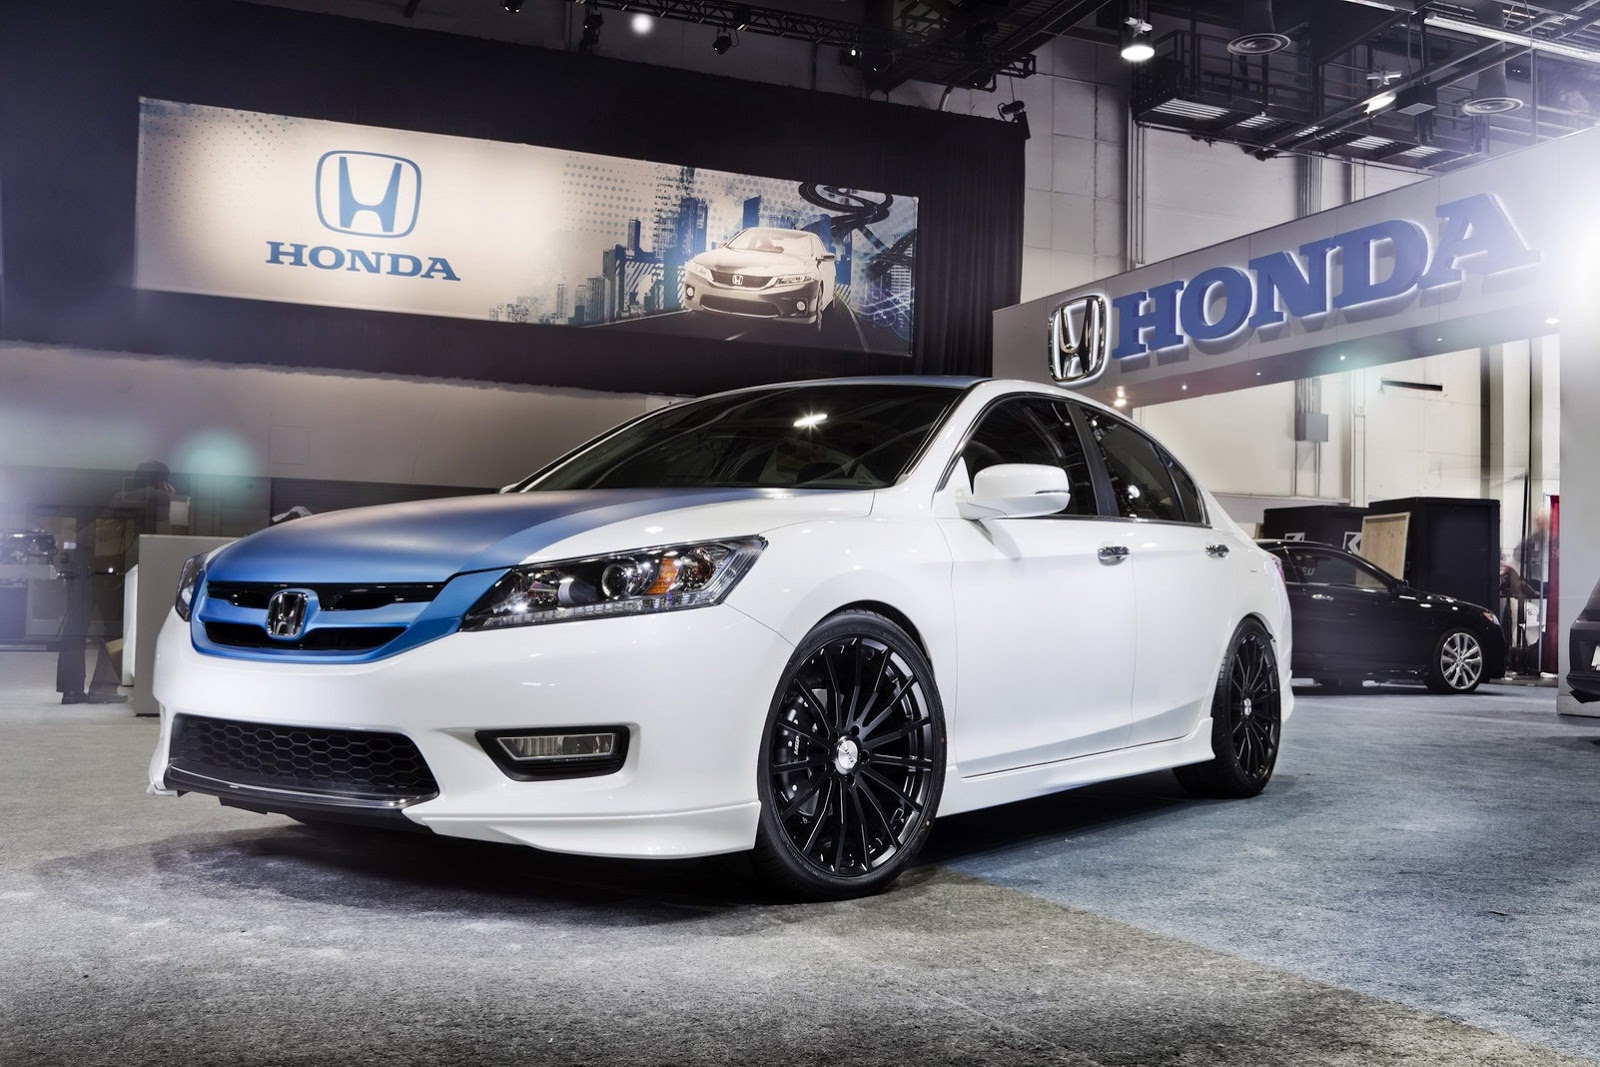 2013 Honda Accord by DSO Eyewear at 2012 SEMA - autoevolution